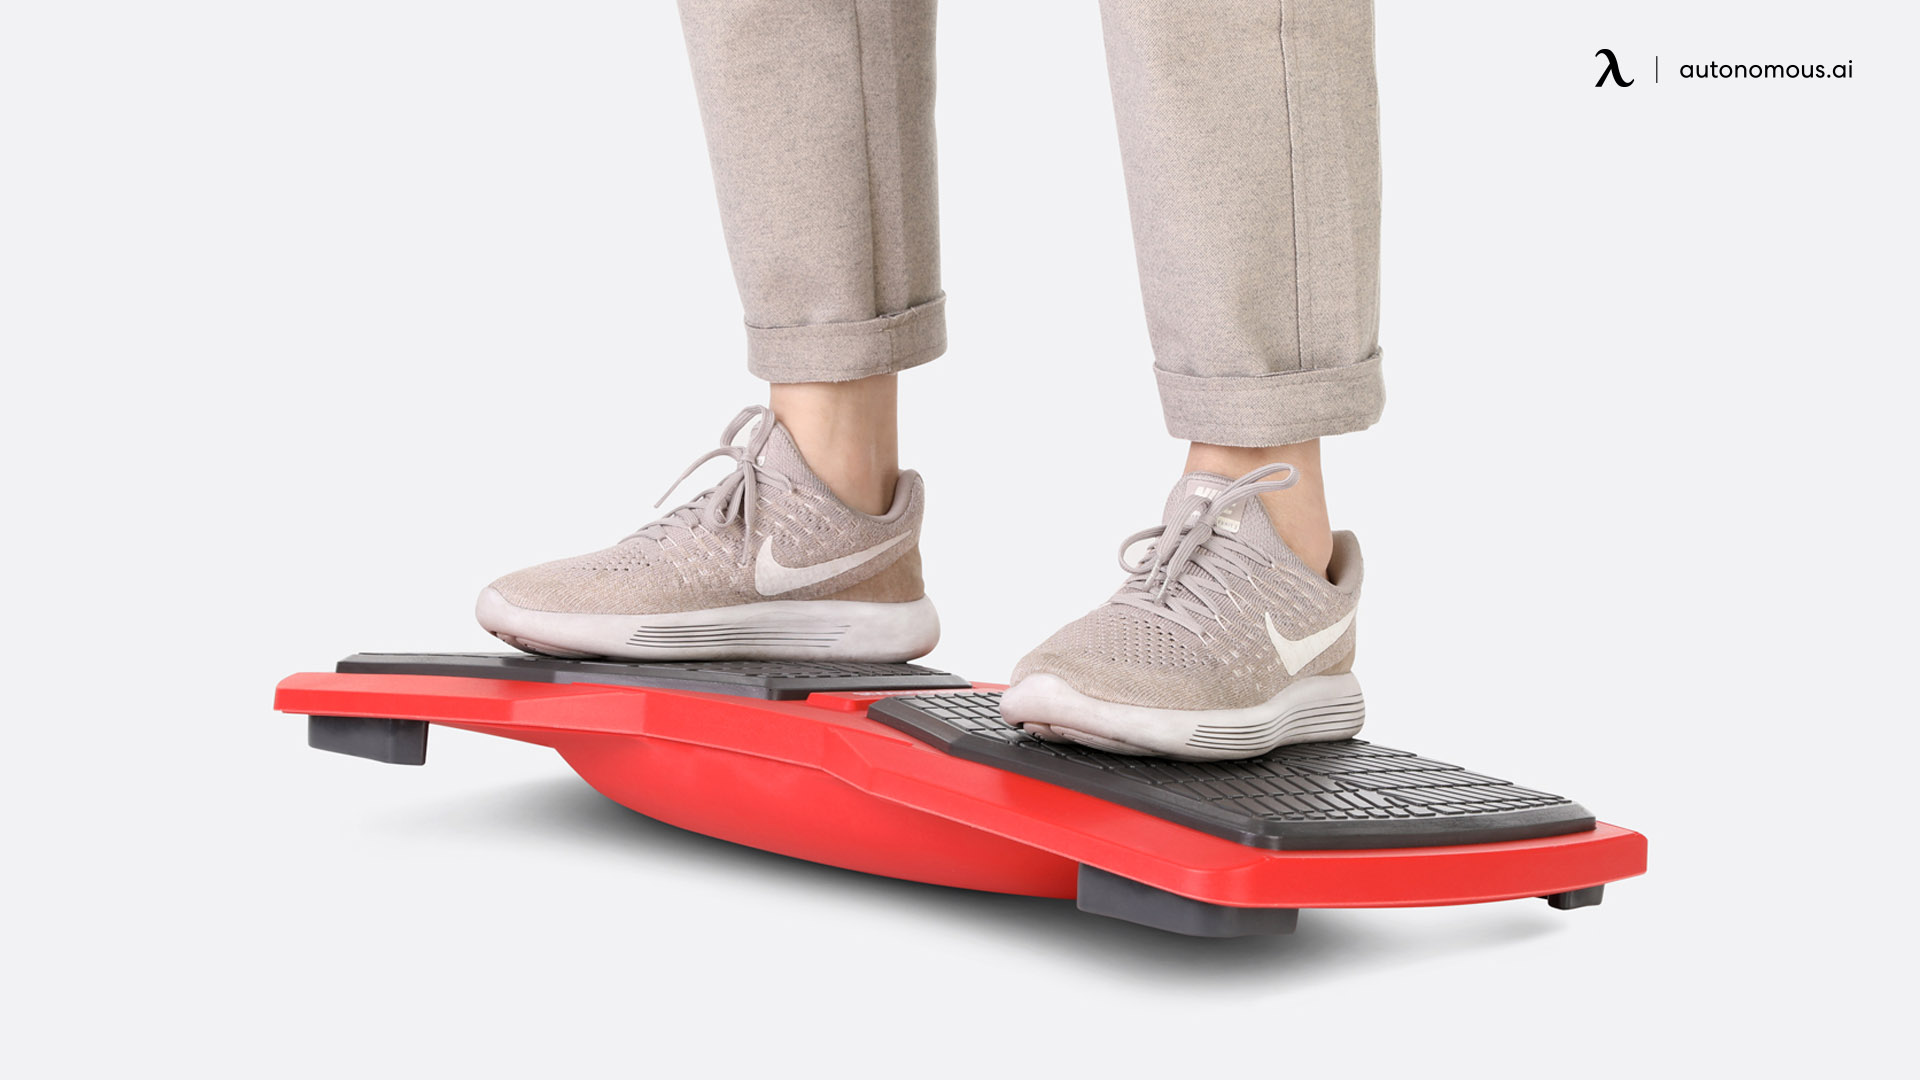 How long should I stand on a balance board